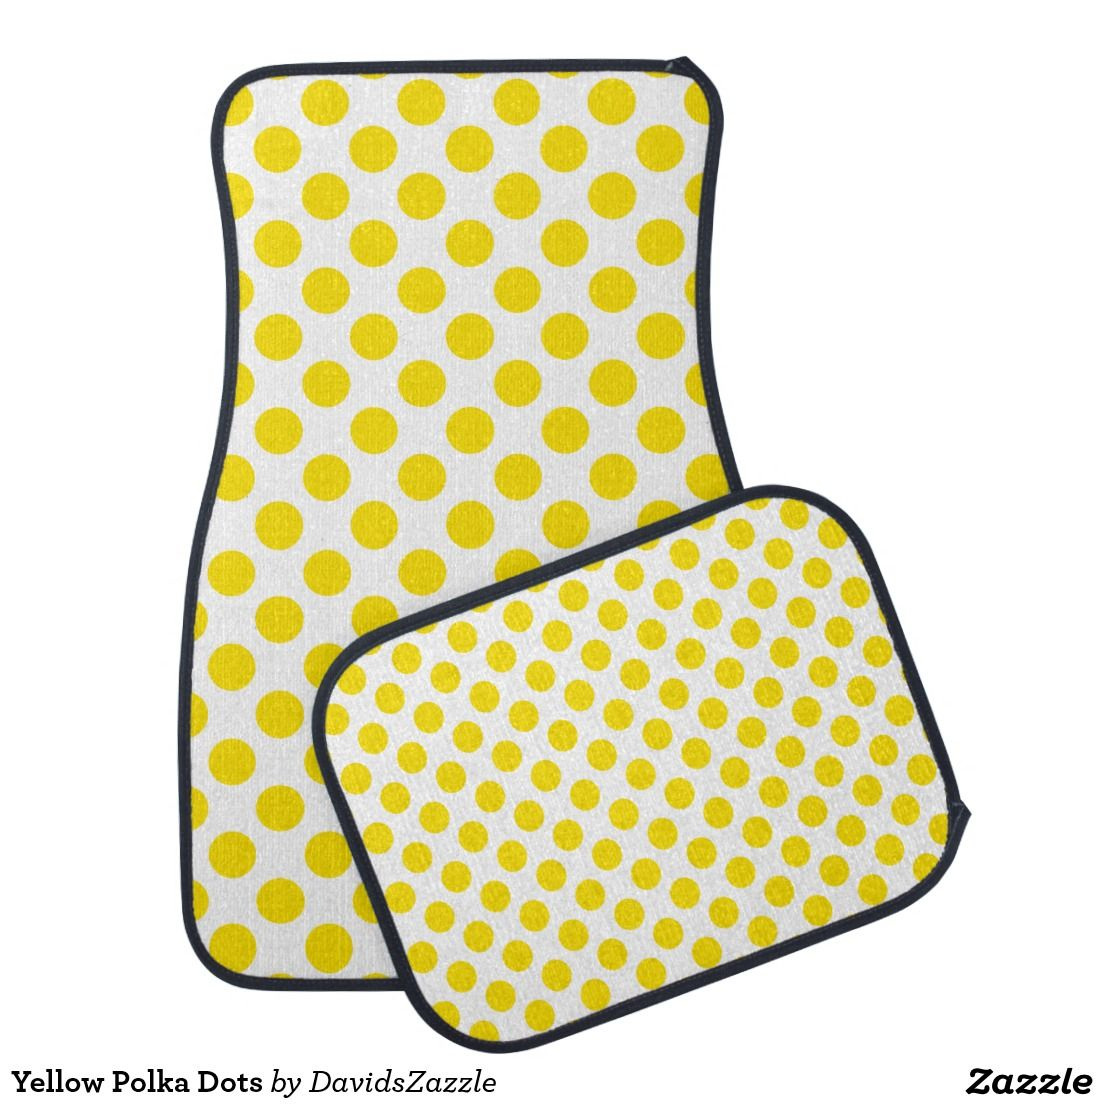 Yellow Polka Dots Front And Rear Car Mats Available On